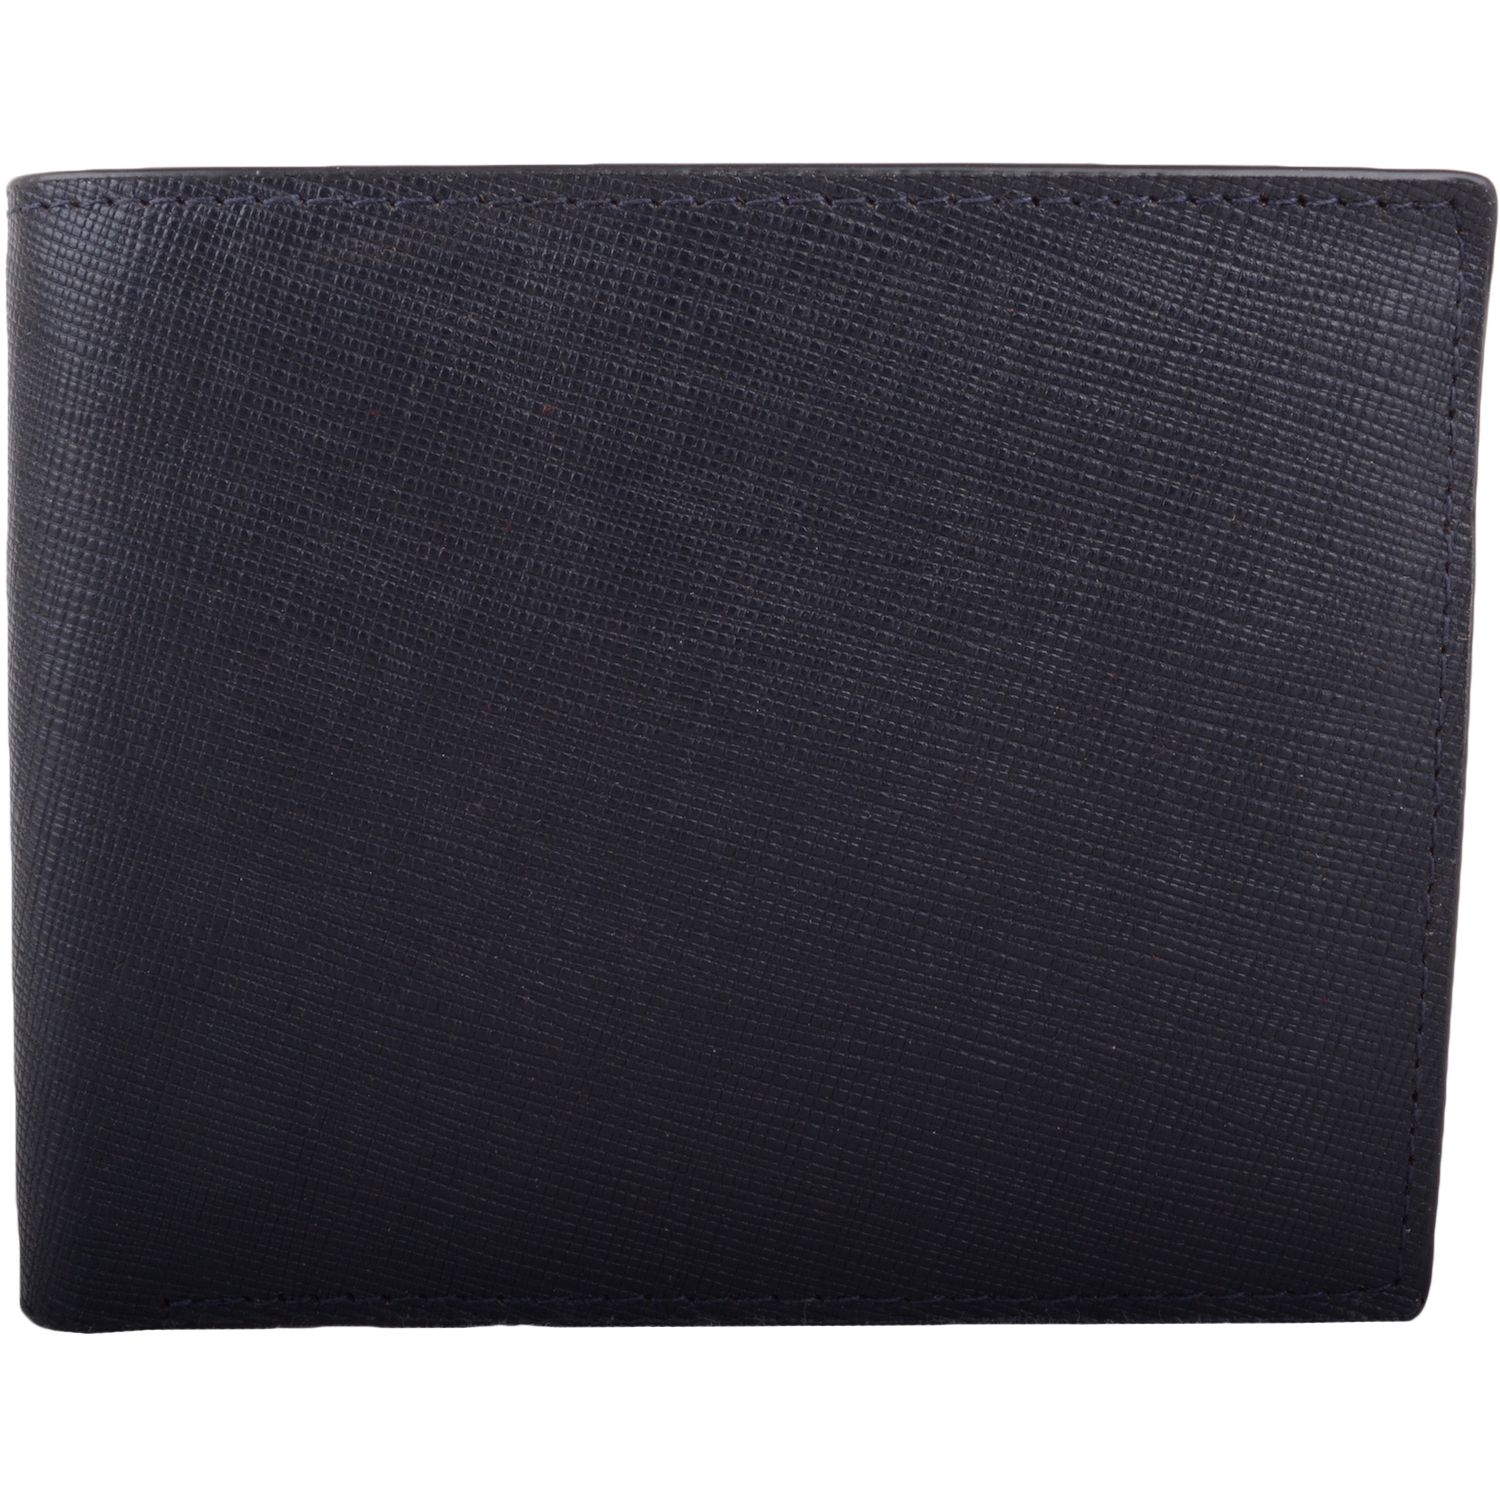 RFID Protected Leather Multi-Colour Wallet - Navy/Grey